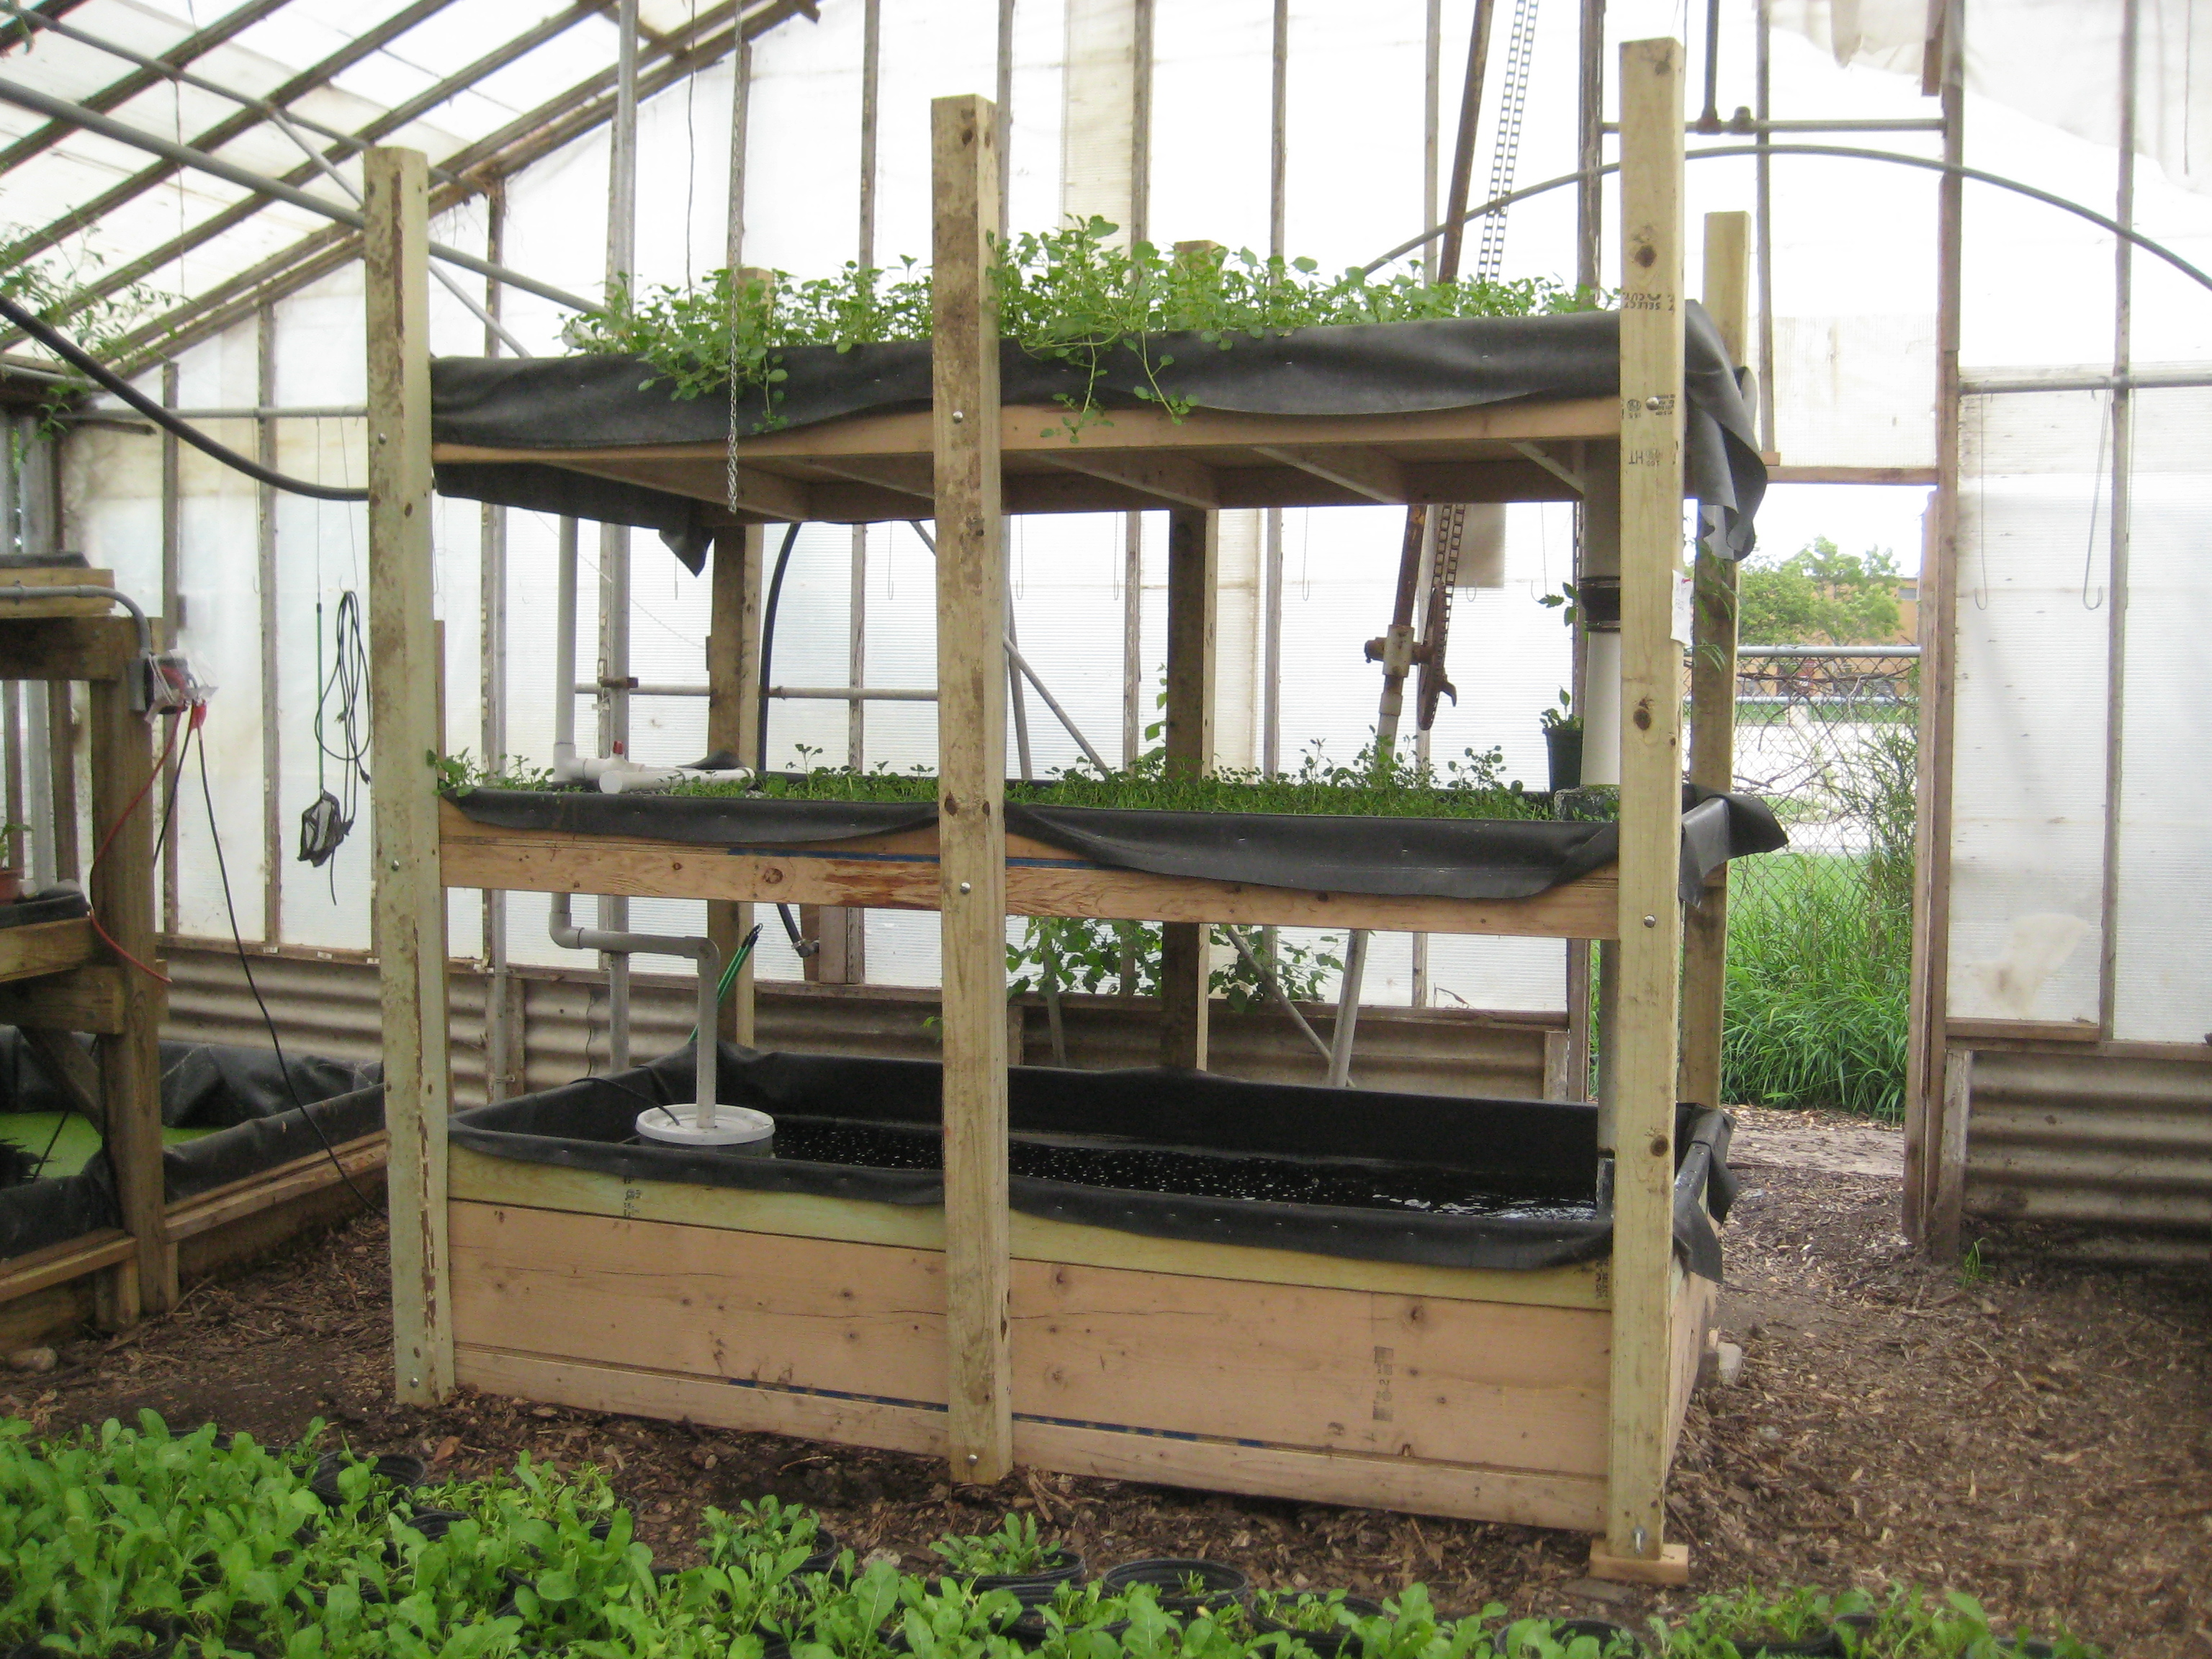 Aquaponics - Wikipedia on pond garden designs, diy garden designs, indoor aquaponics system designs, indoor garden designs, best aquaponic designs, backyard garden designs, berry garden designs, aeroponic garden designs, hydroponic garden designs, aquaculture garden designs, green garden designs, aquaponic diy designs, art garden designs, organic garden designs, greenhouse designs, for backyard aquaponic designs,